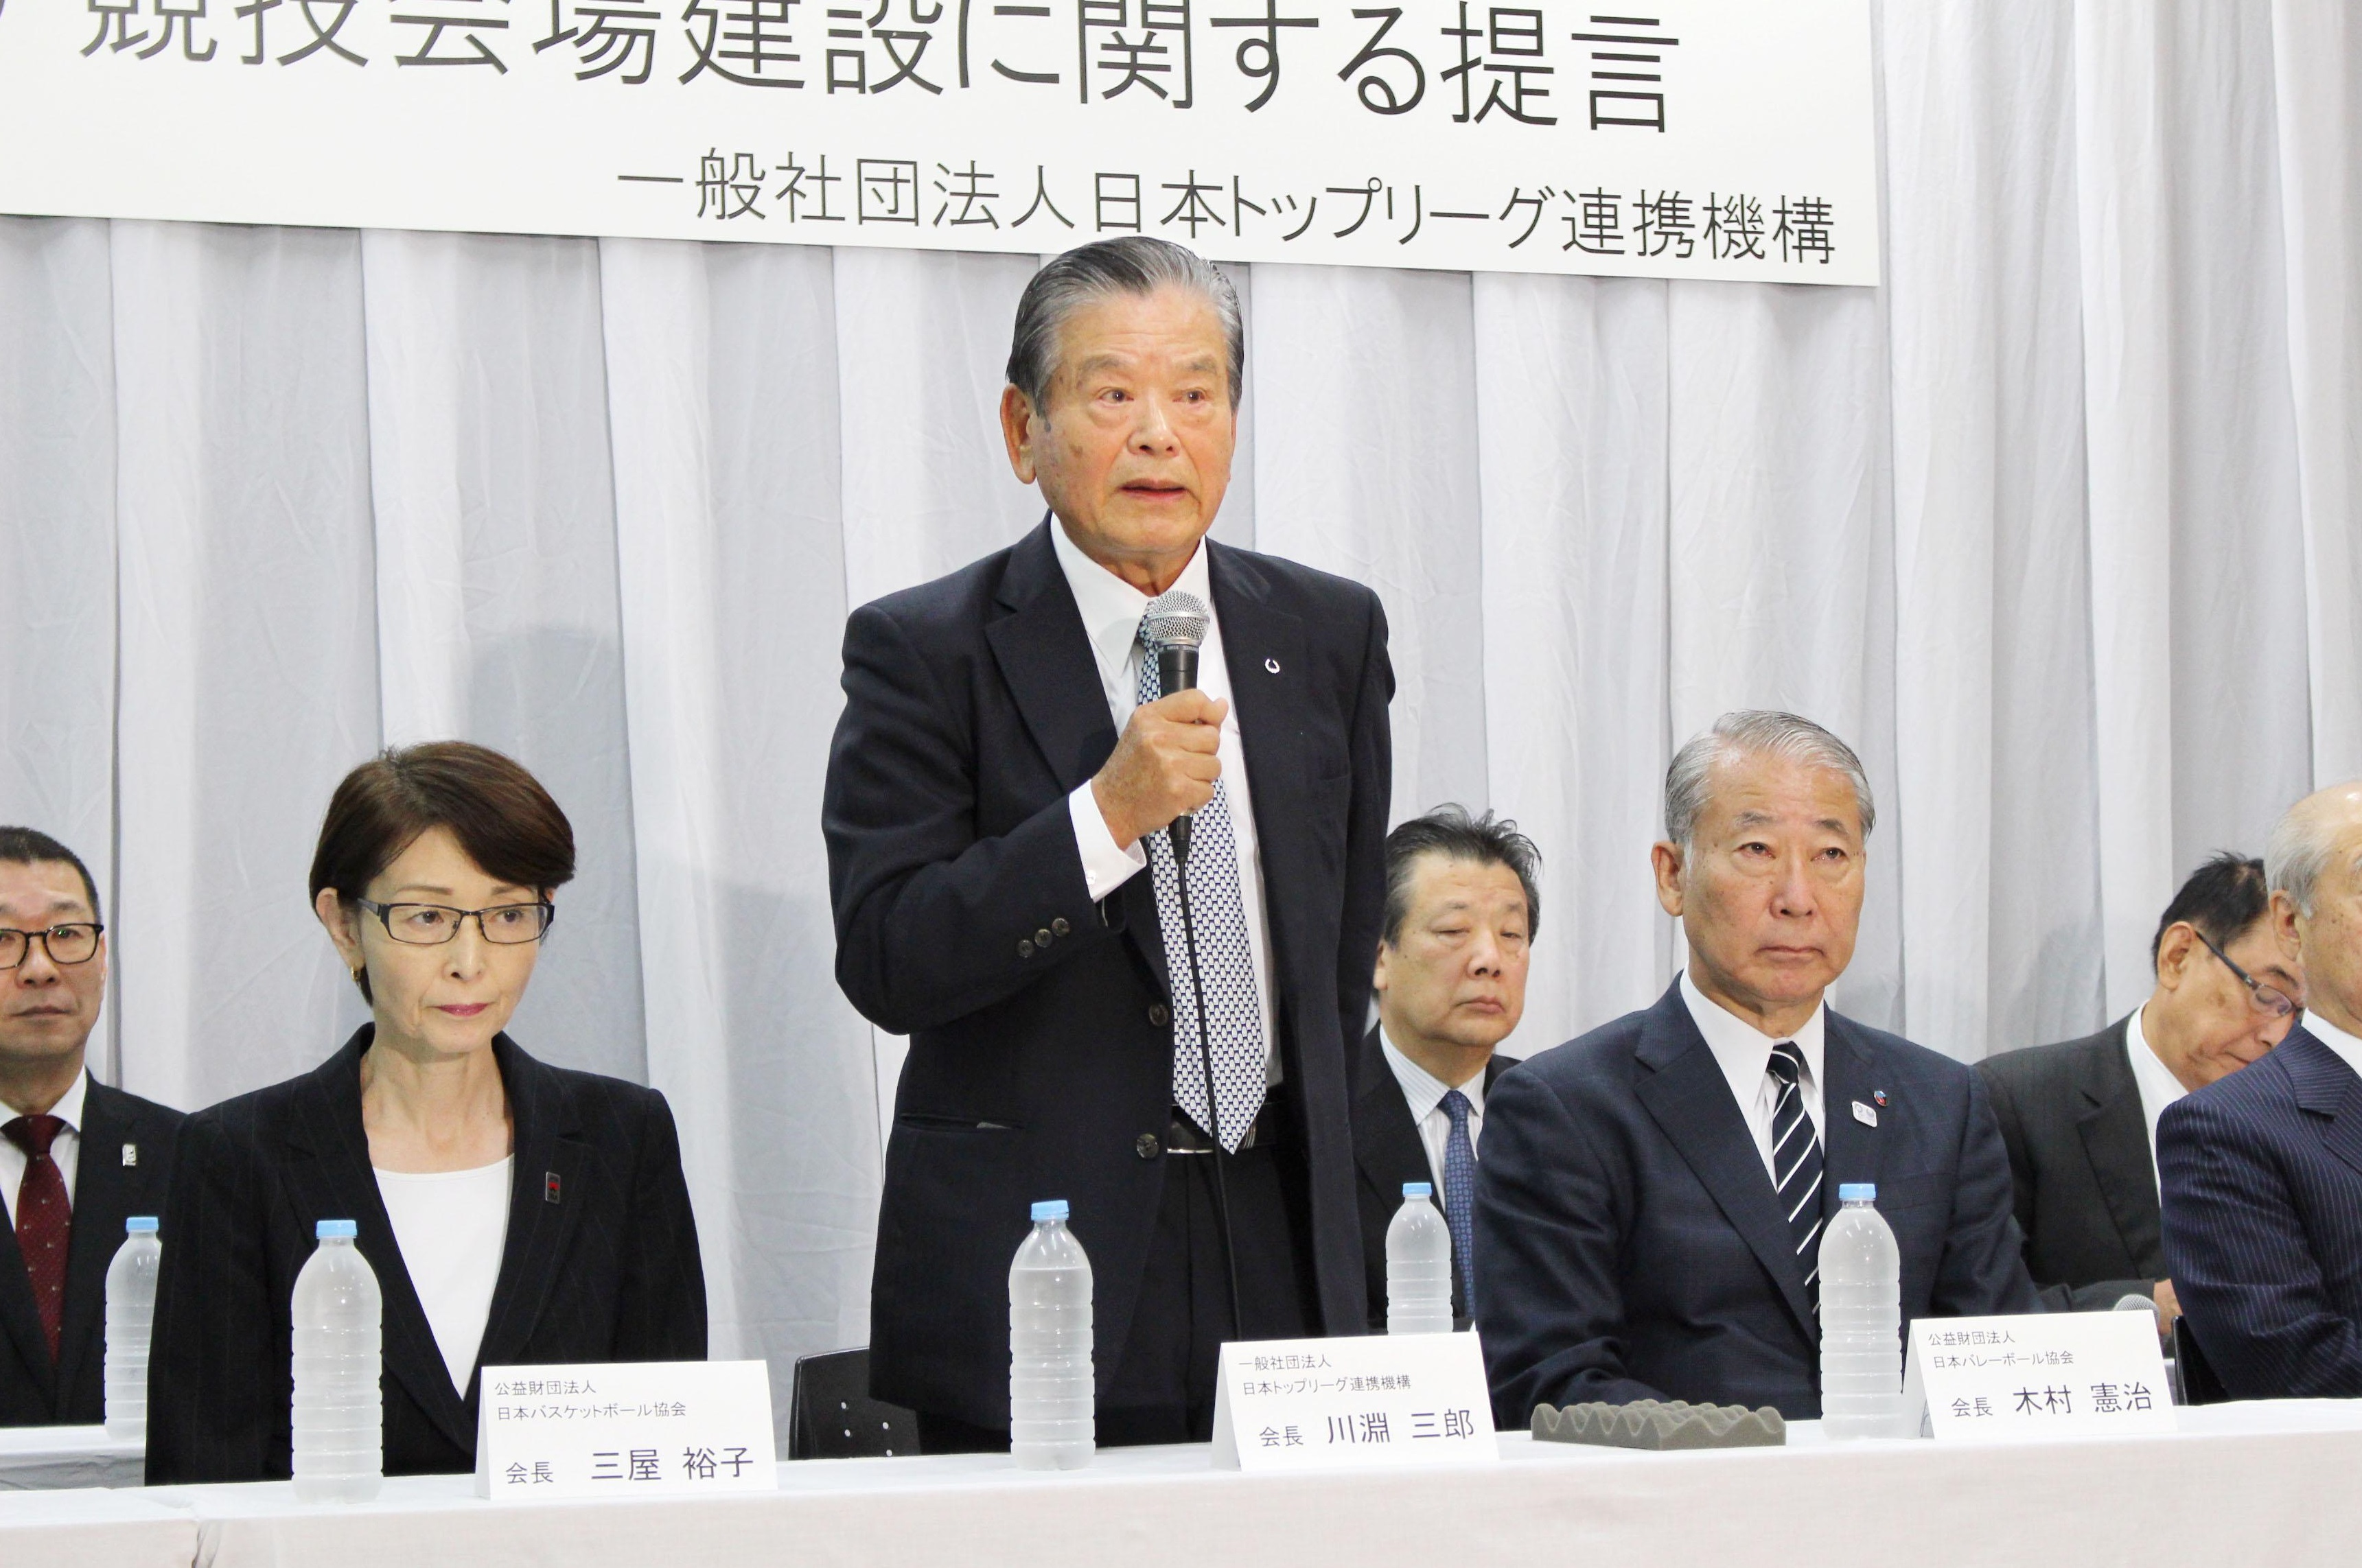 Saburo Kawabuchi, head of the Alliance of Japan Top Leagues, speaks at a news conference Wednesday in Tokyo about the construction of the Ariake Arena volleyball venue for the Tokyo 2020 Olympics. | KYODO